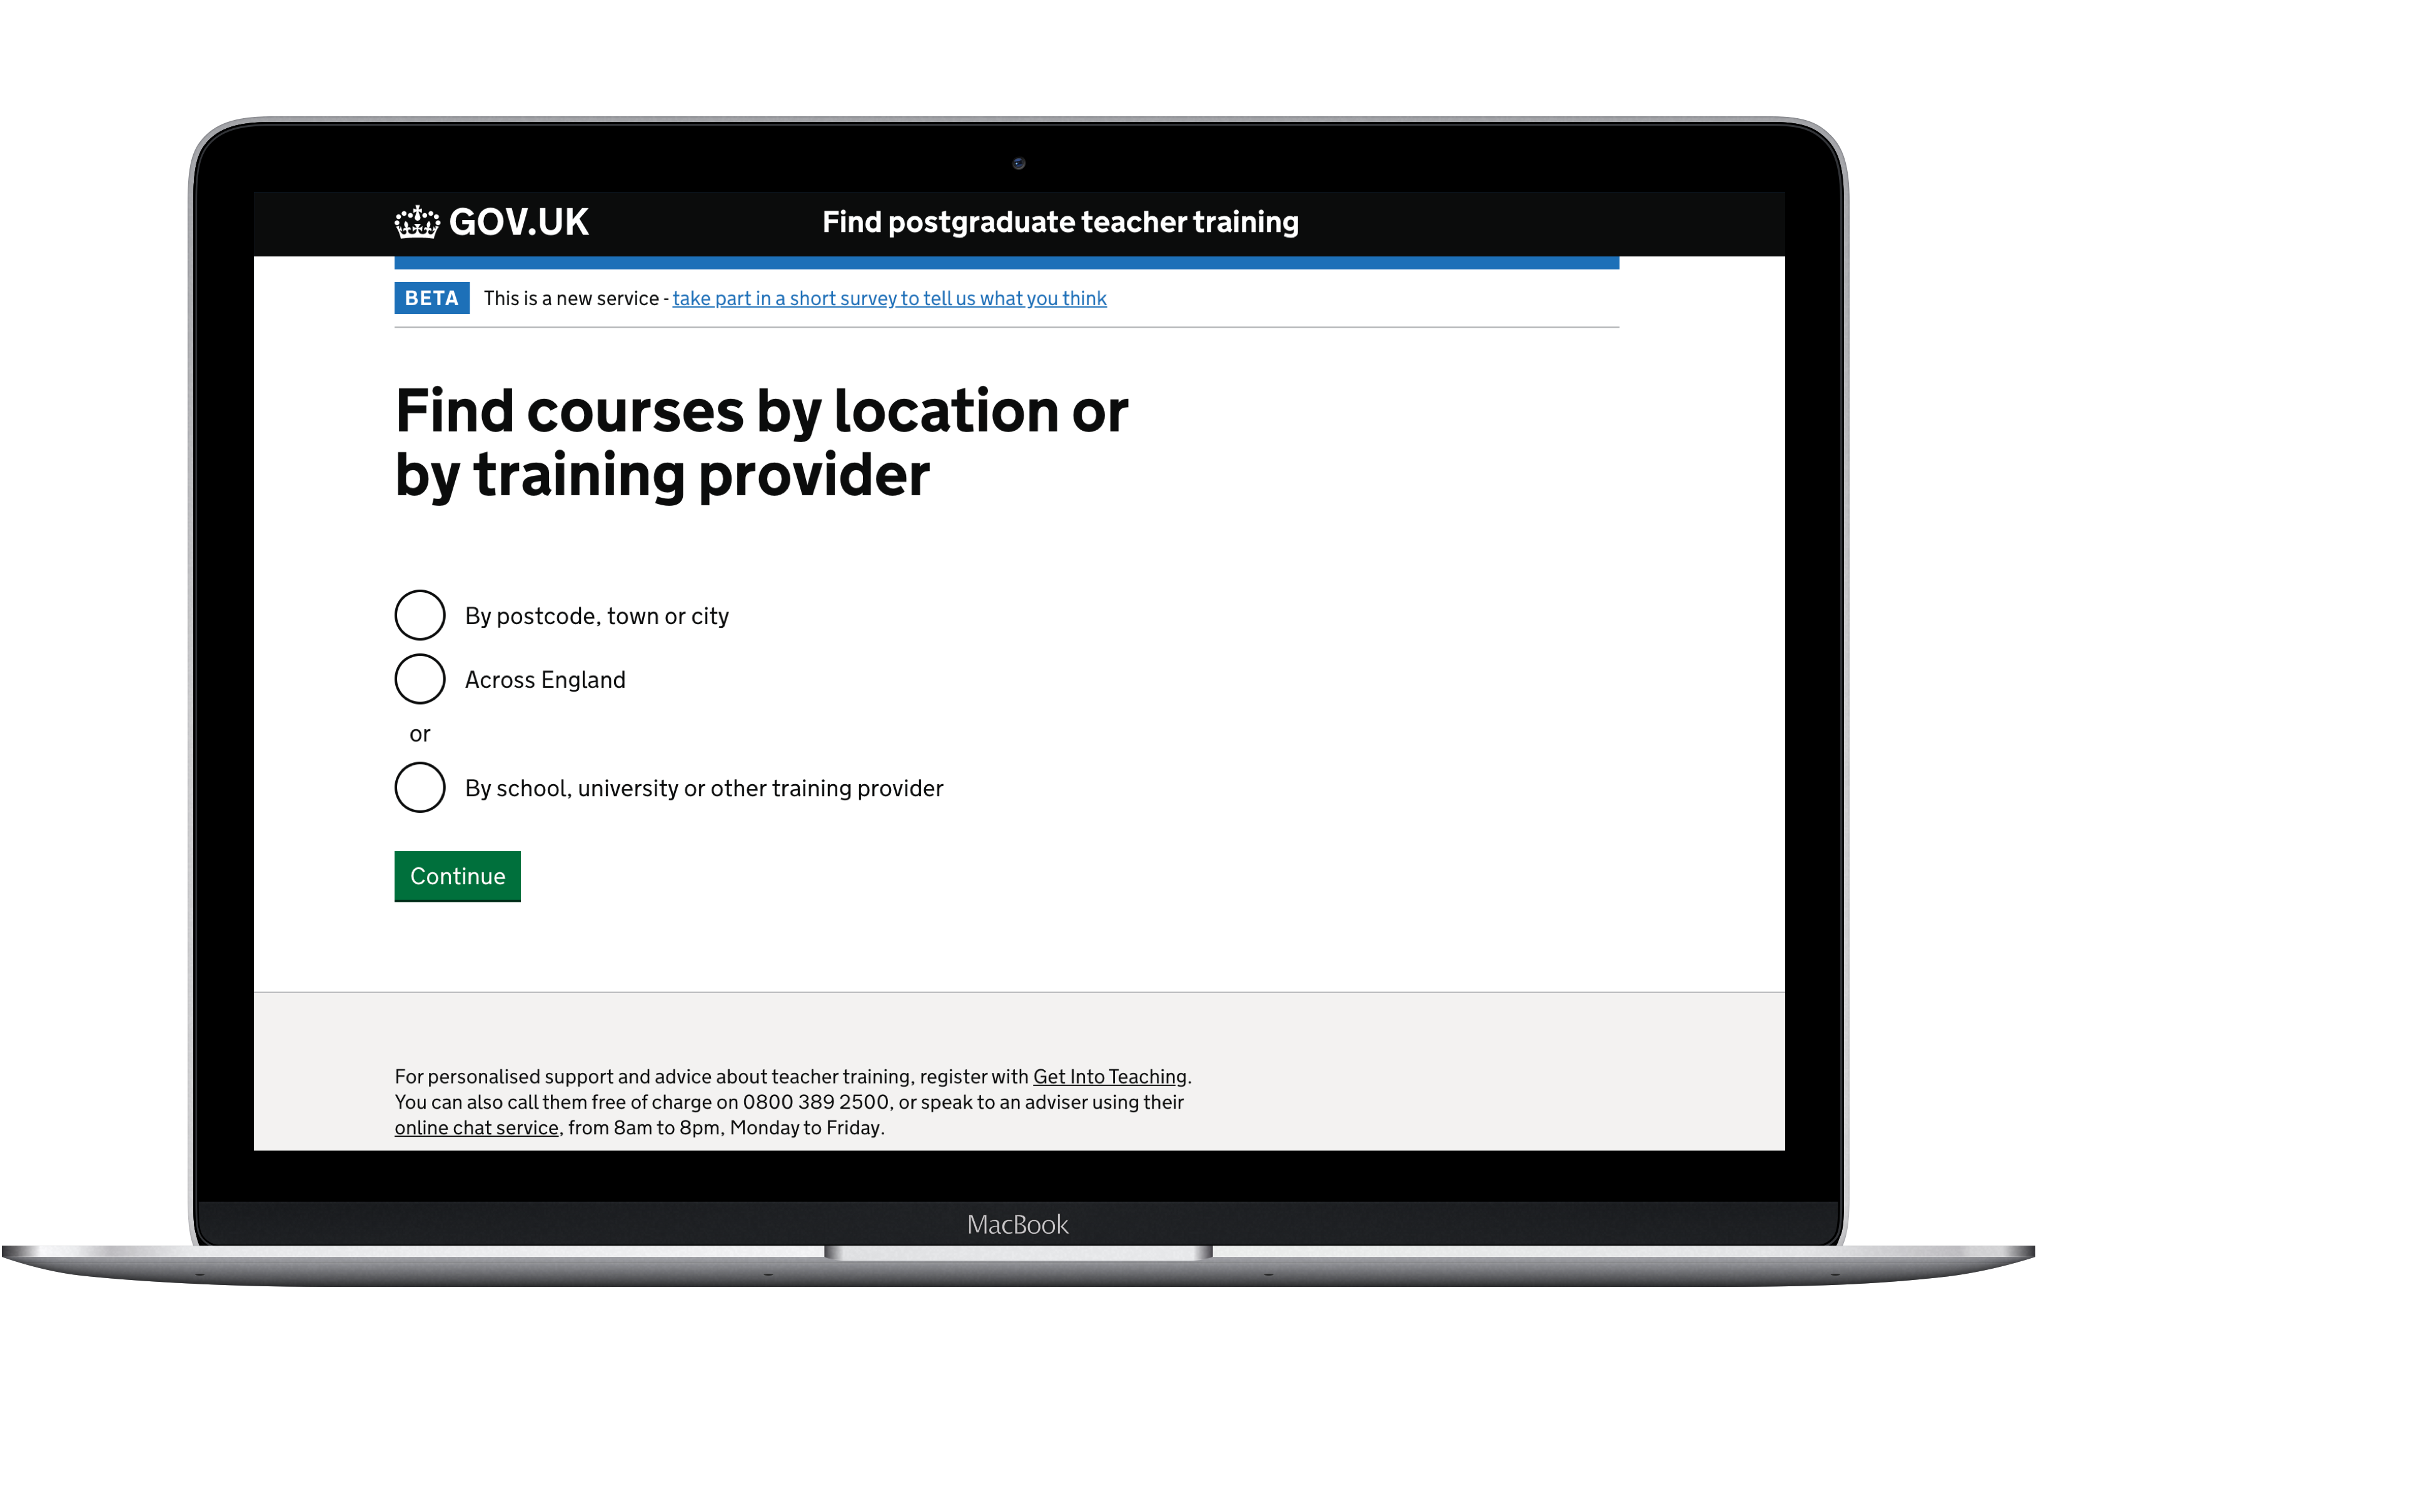 Find courses by location or training provider laptop